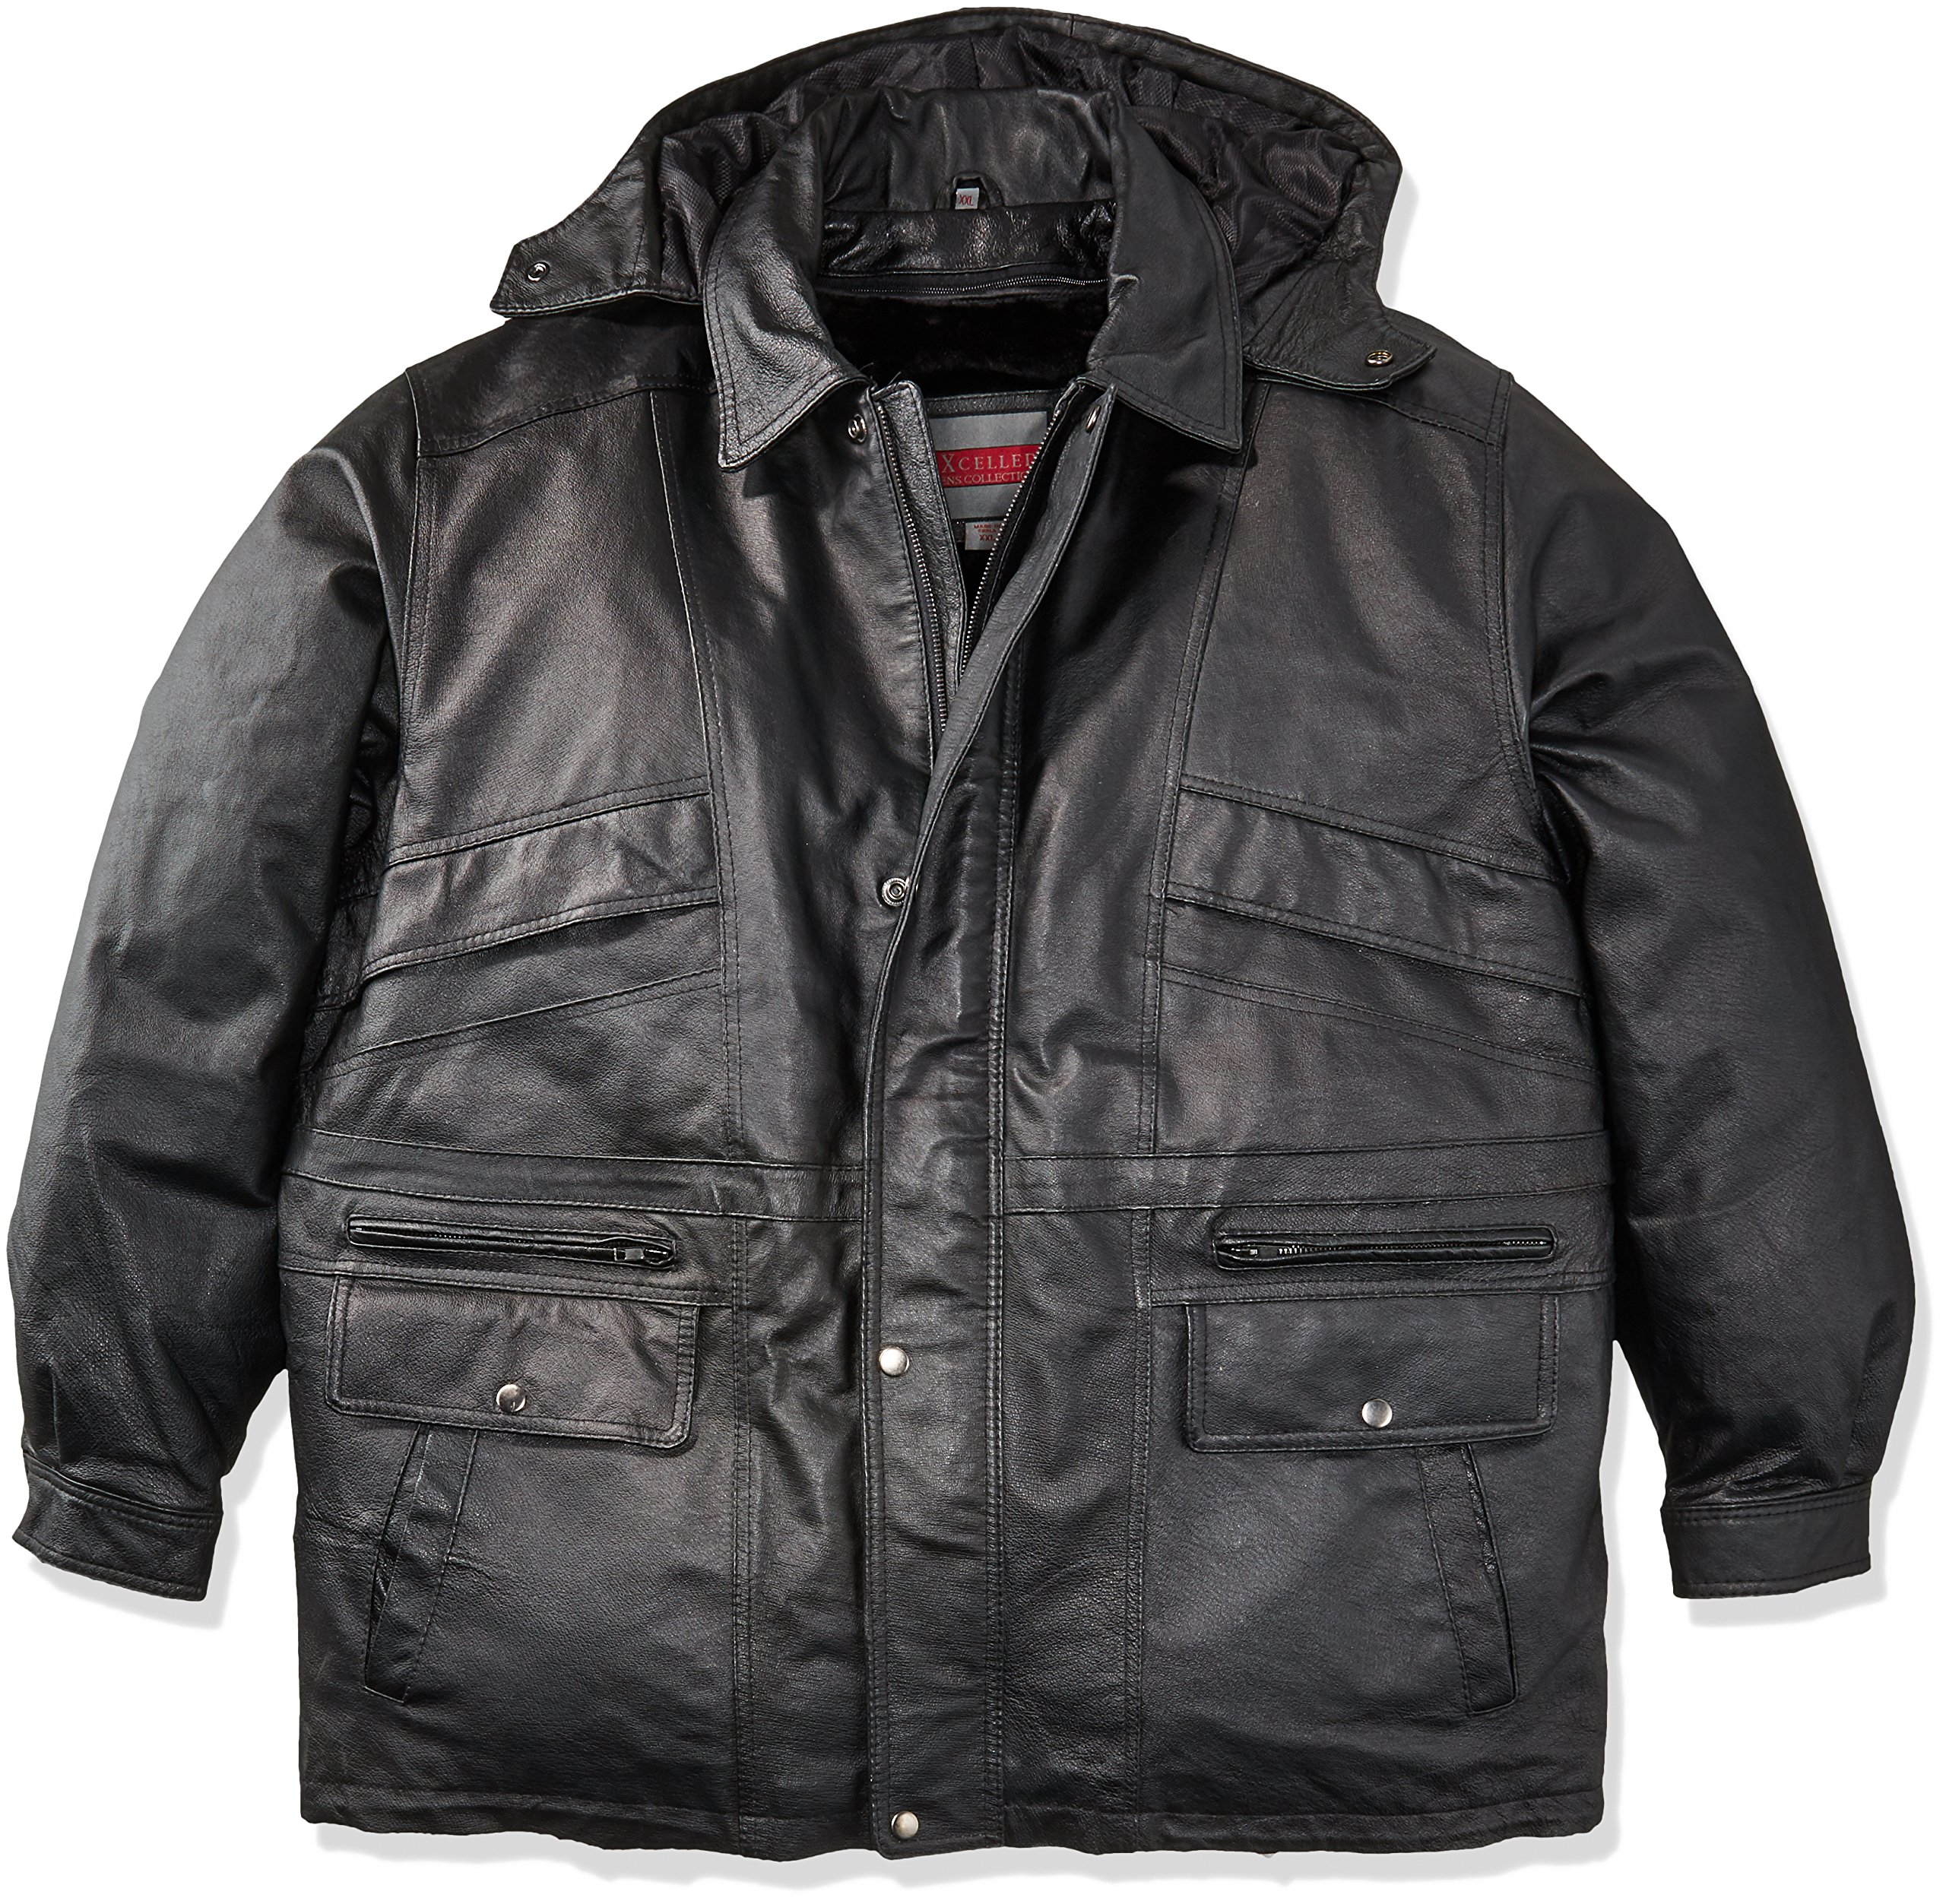 Excelled Men's Big and Tall Lambskin Parka, Black, 4X